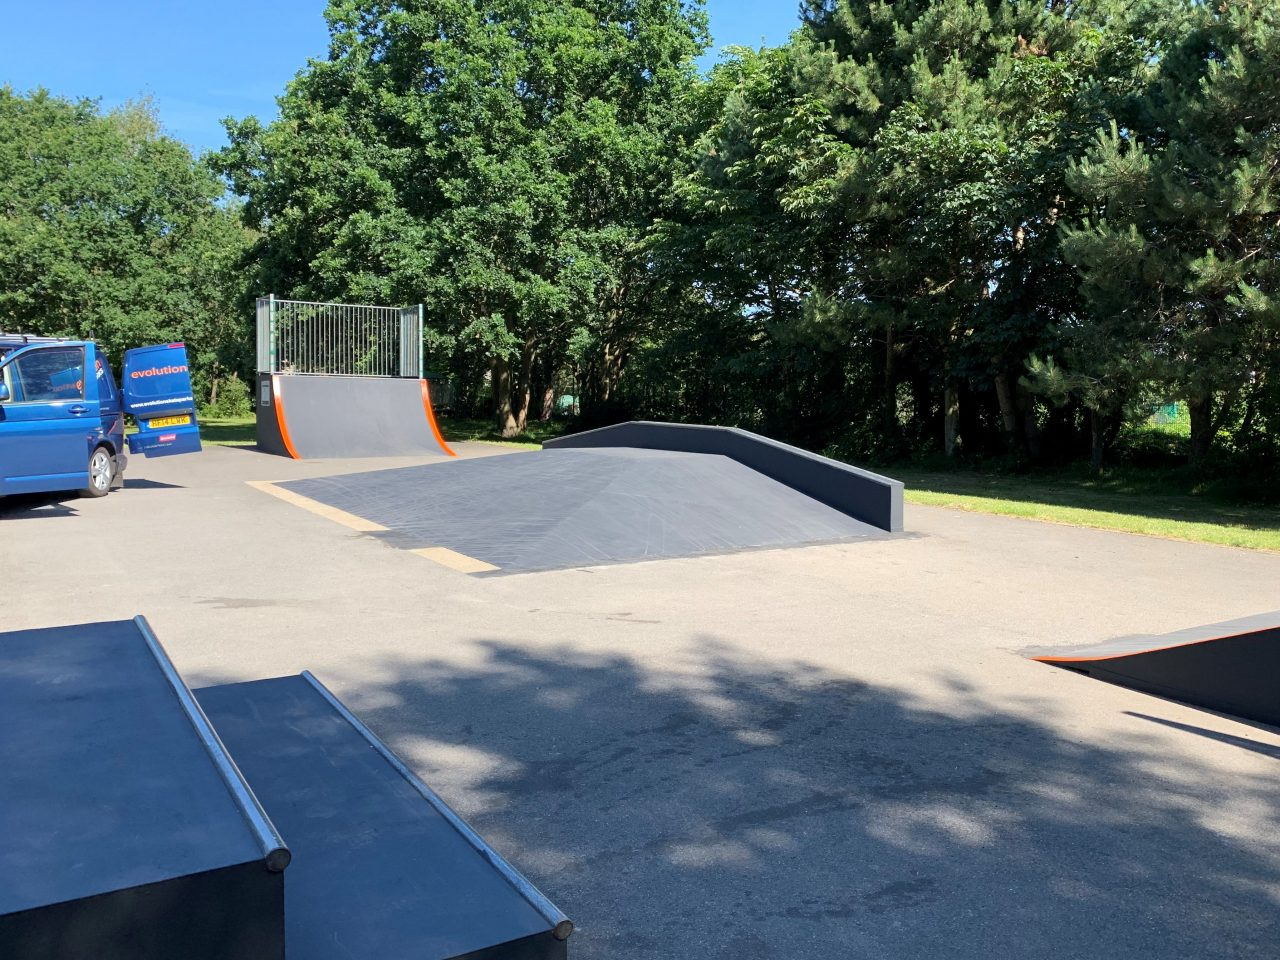 https://burghfieldparishcouncil.gov.uk/wp-content/uploads/2019/07/SKate-Park-1280x960.jpg